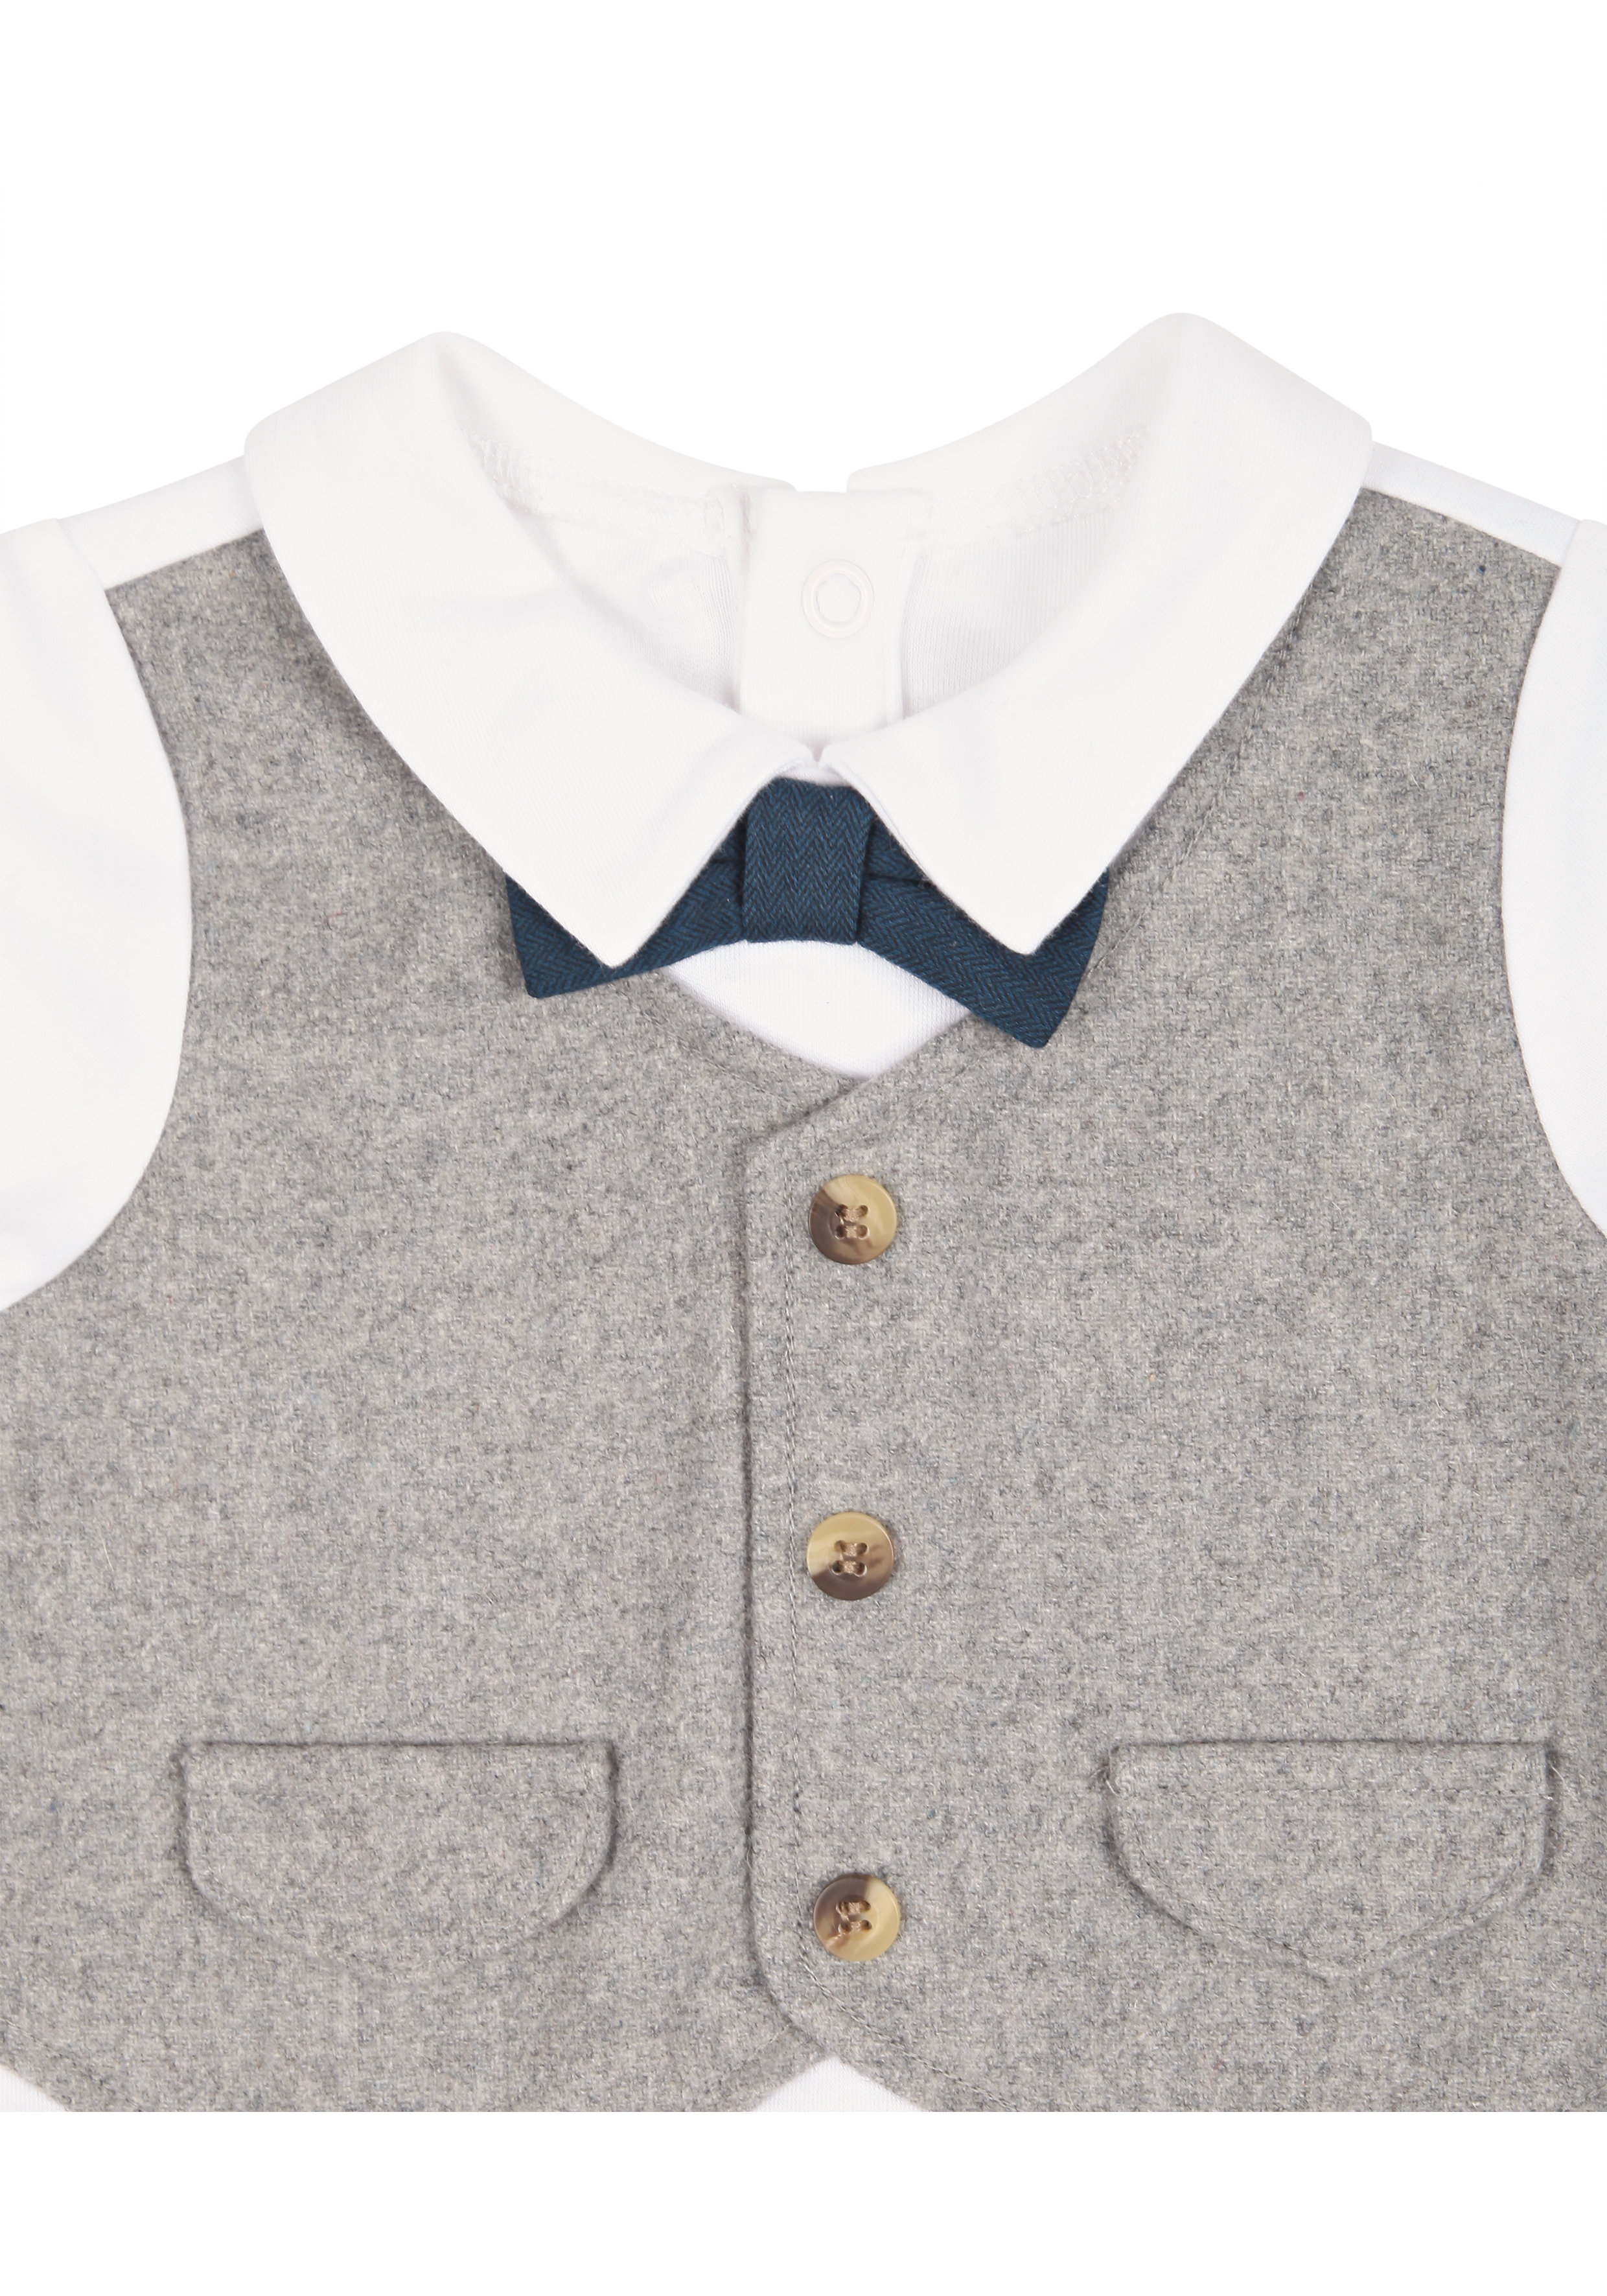 Mothercare | Boys Full Sleeves Romper Mock Waistcoat With Bow Tie - Grey